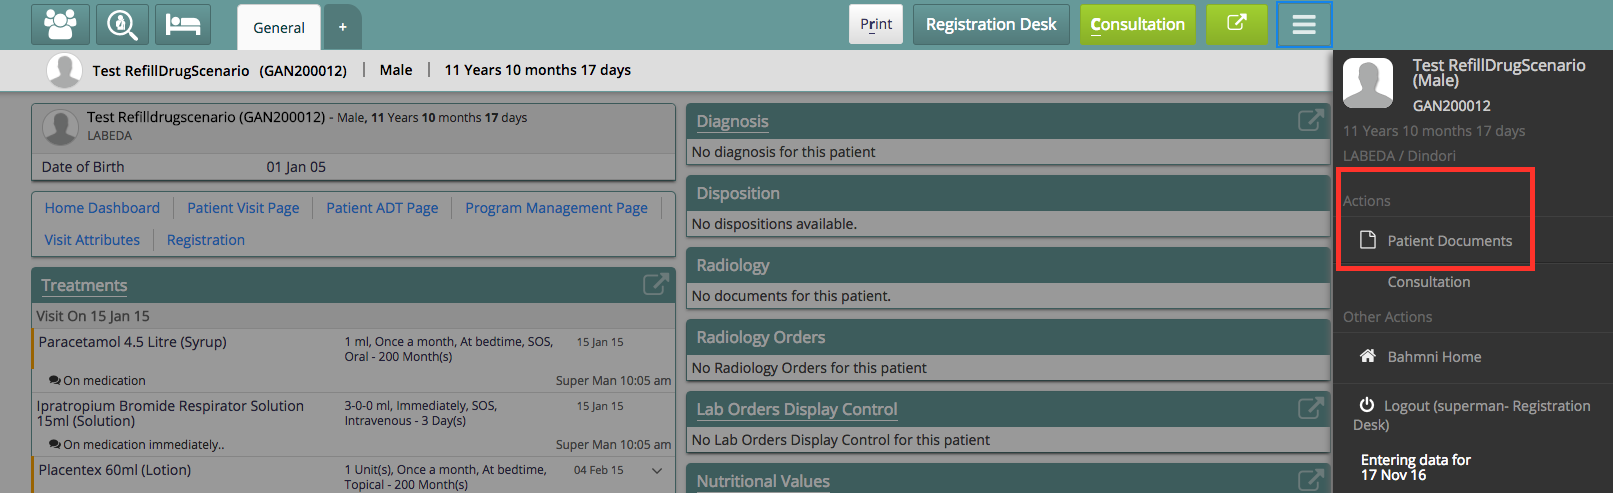 Patient Document Sidebar